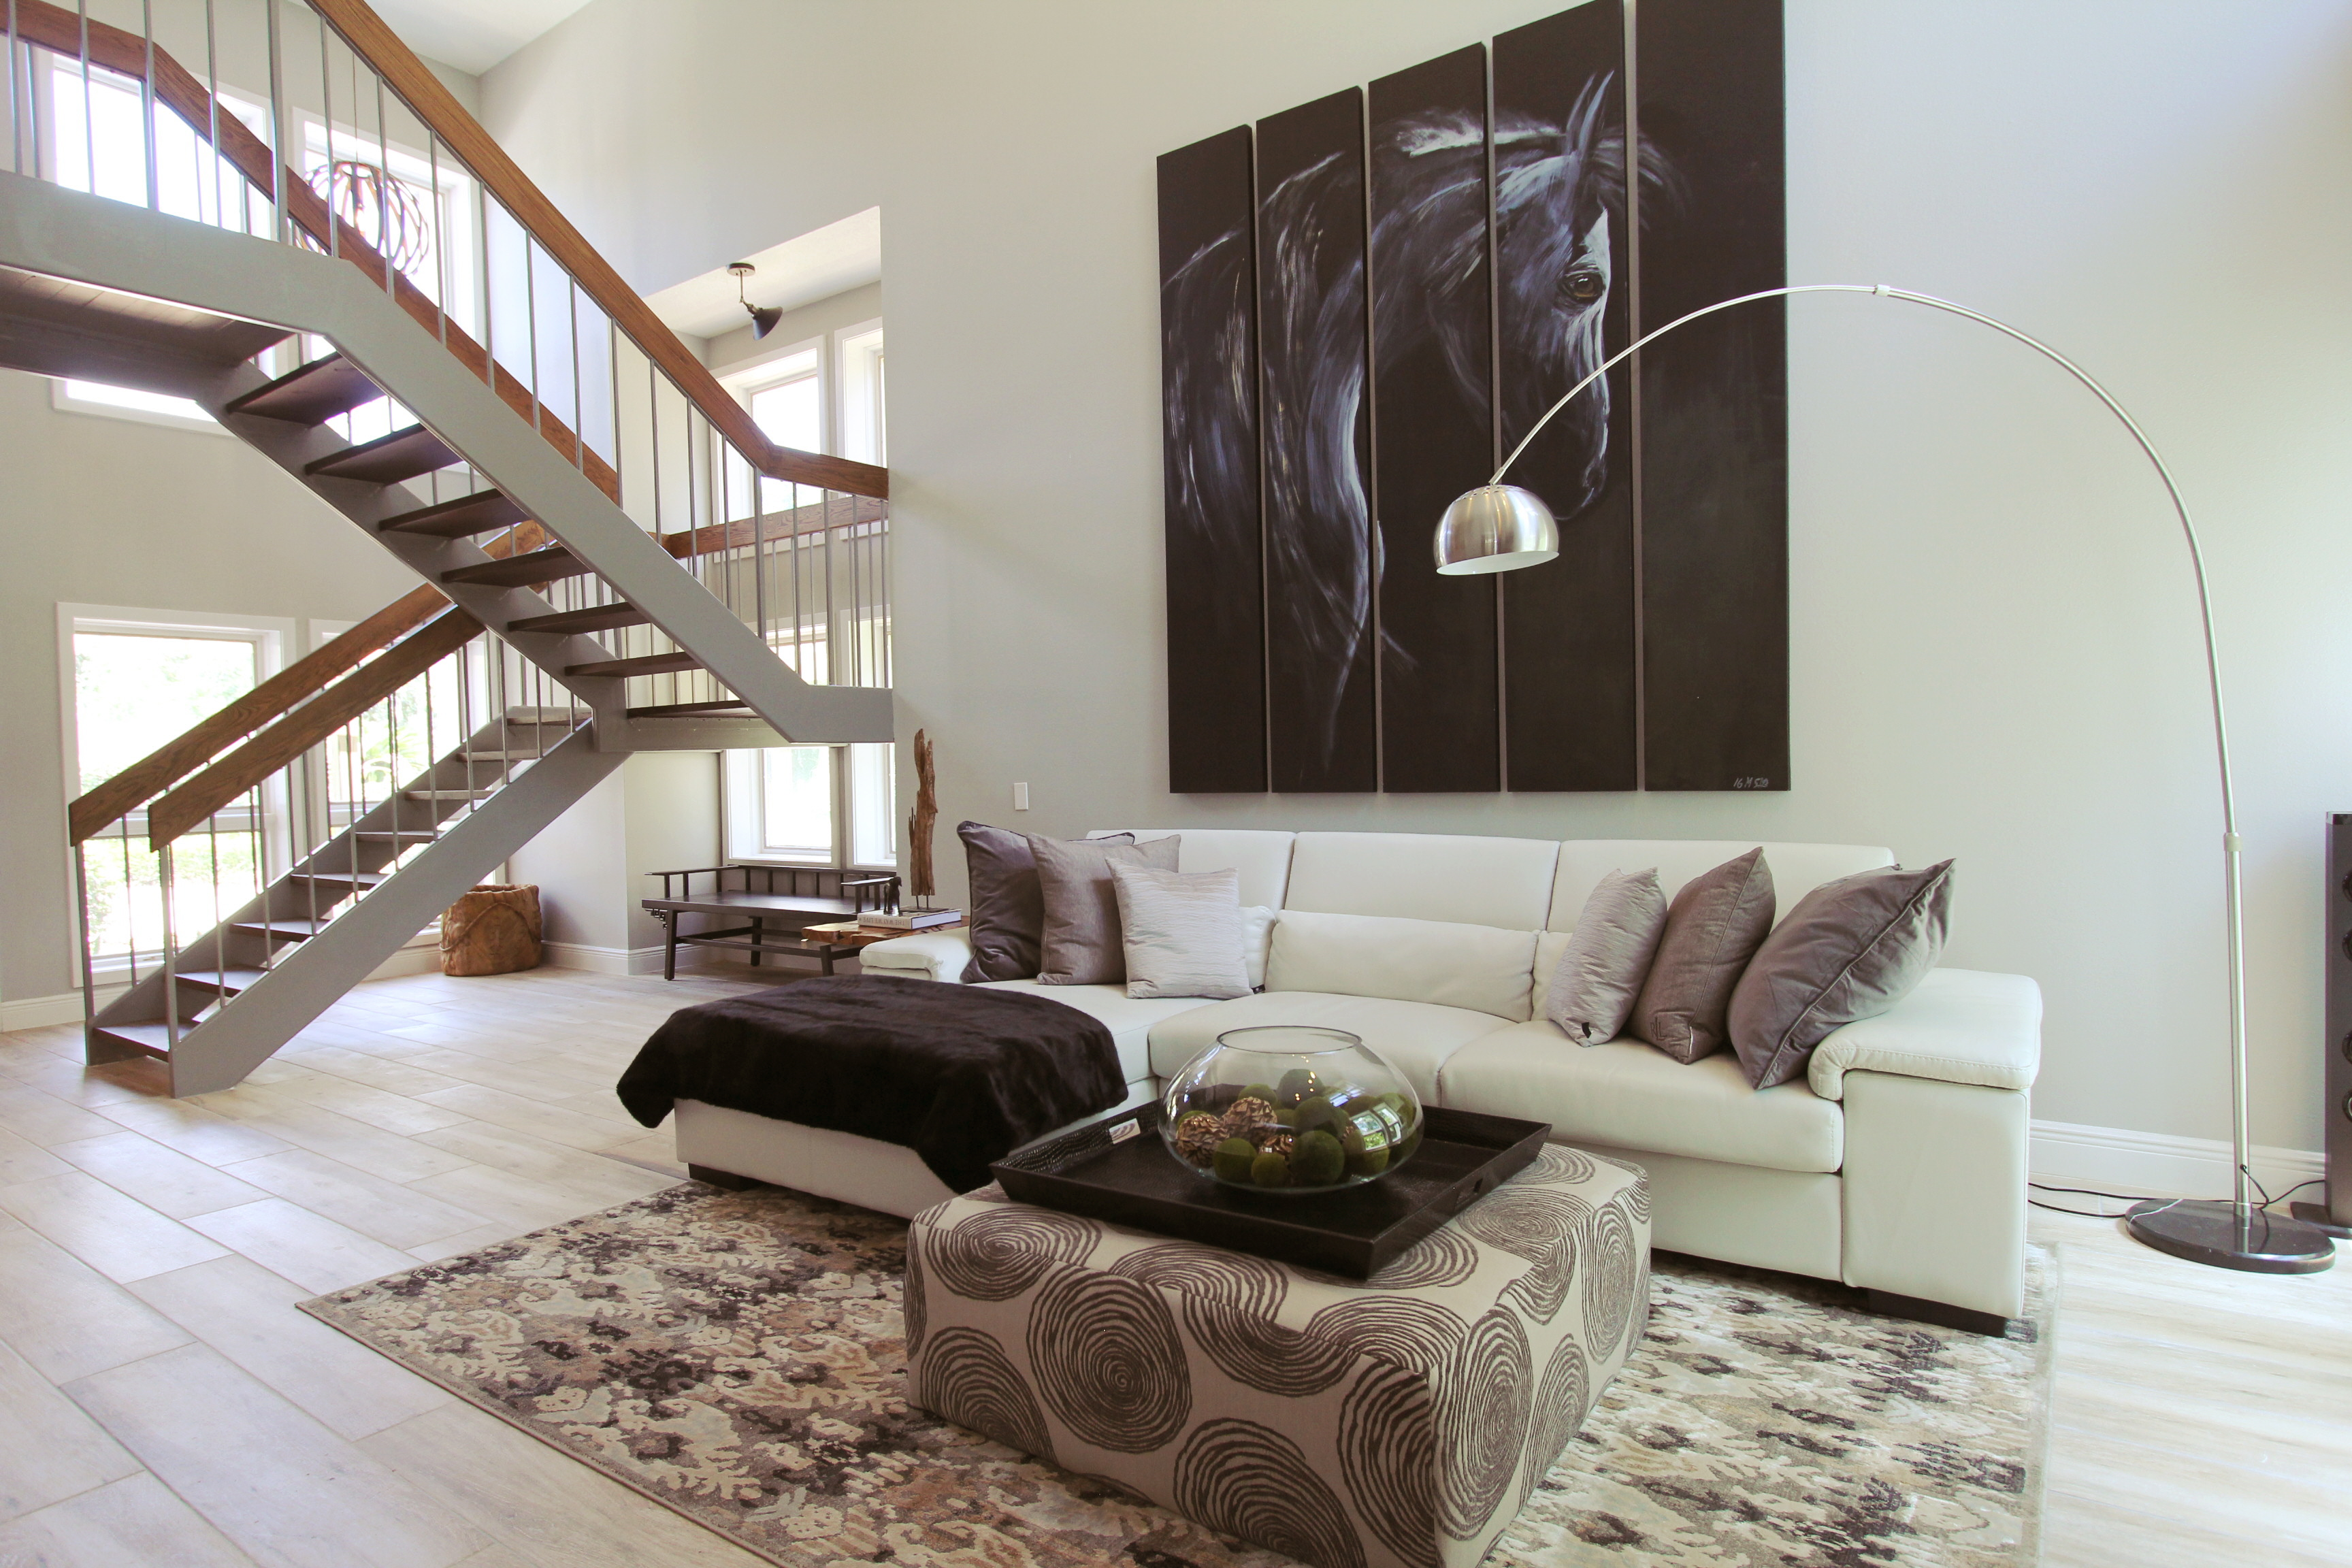 Sleek Lines And Larger Than Life Art Give This Grand Living Room Pizazz